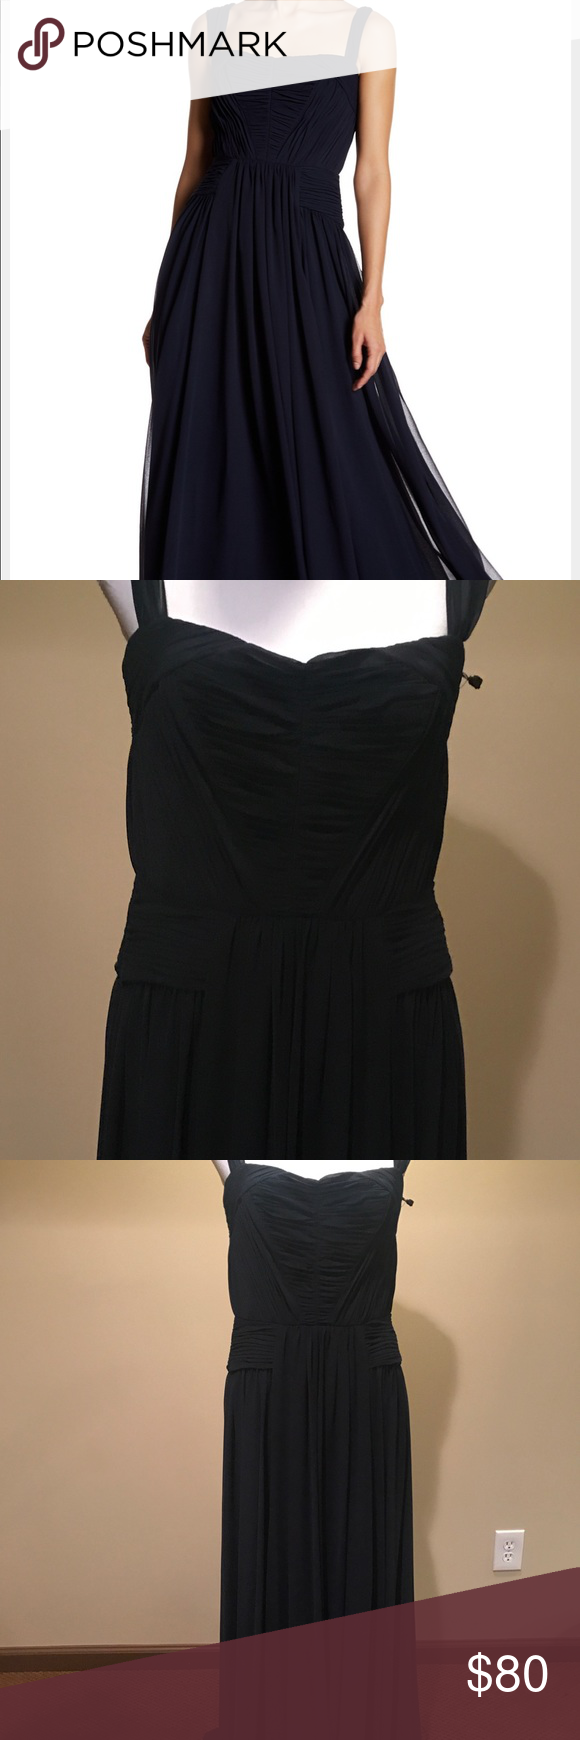 Vera Wang Chiffon Navy Blue evening gown Vera Wang Navy Blue Chiffon long Gown  Size 8  Very flowy  Lined  100% Polyester lining 96% Polyester 4% spandex  Great for Bridesmaids or other formal events  NWT MSRP $278 Vera Wang Dresses Wedding